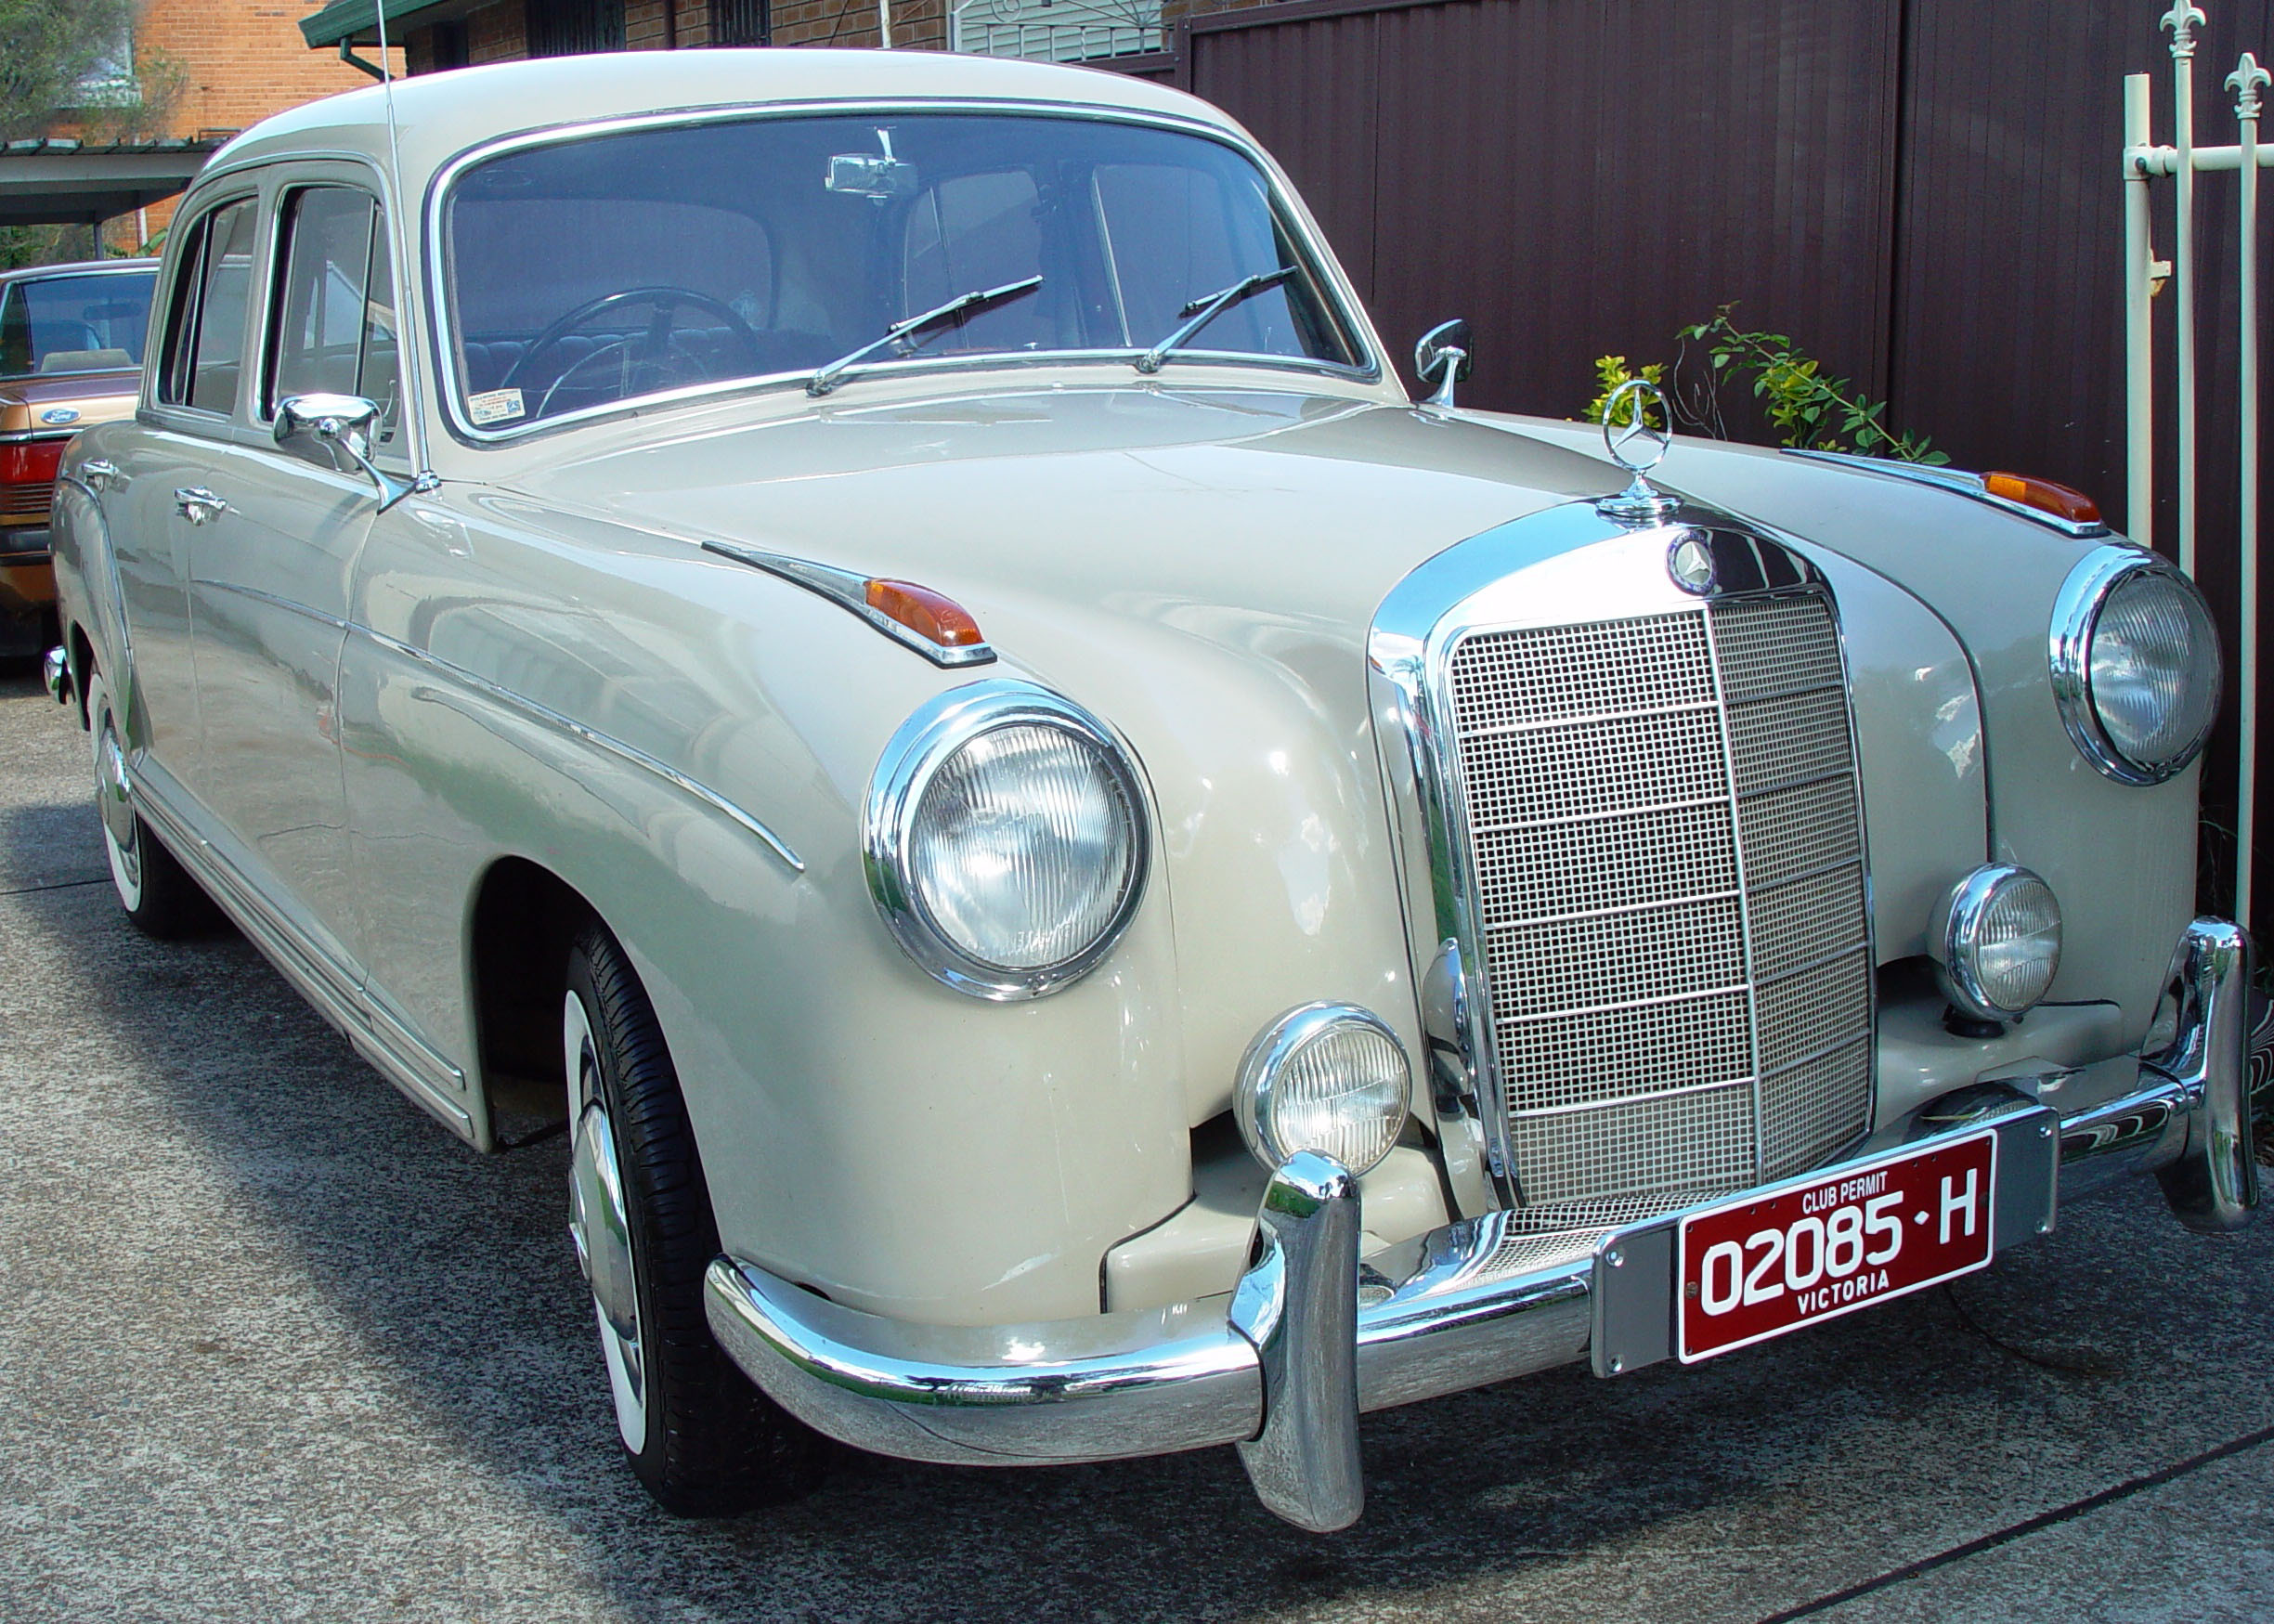 Craig semple 39 s 1958 mercedes benz 220s ponton sedans www for 1958 mercedes benz 220s for sale